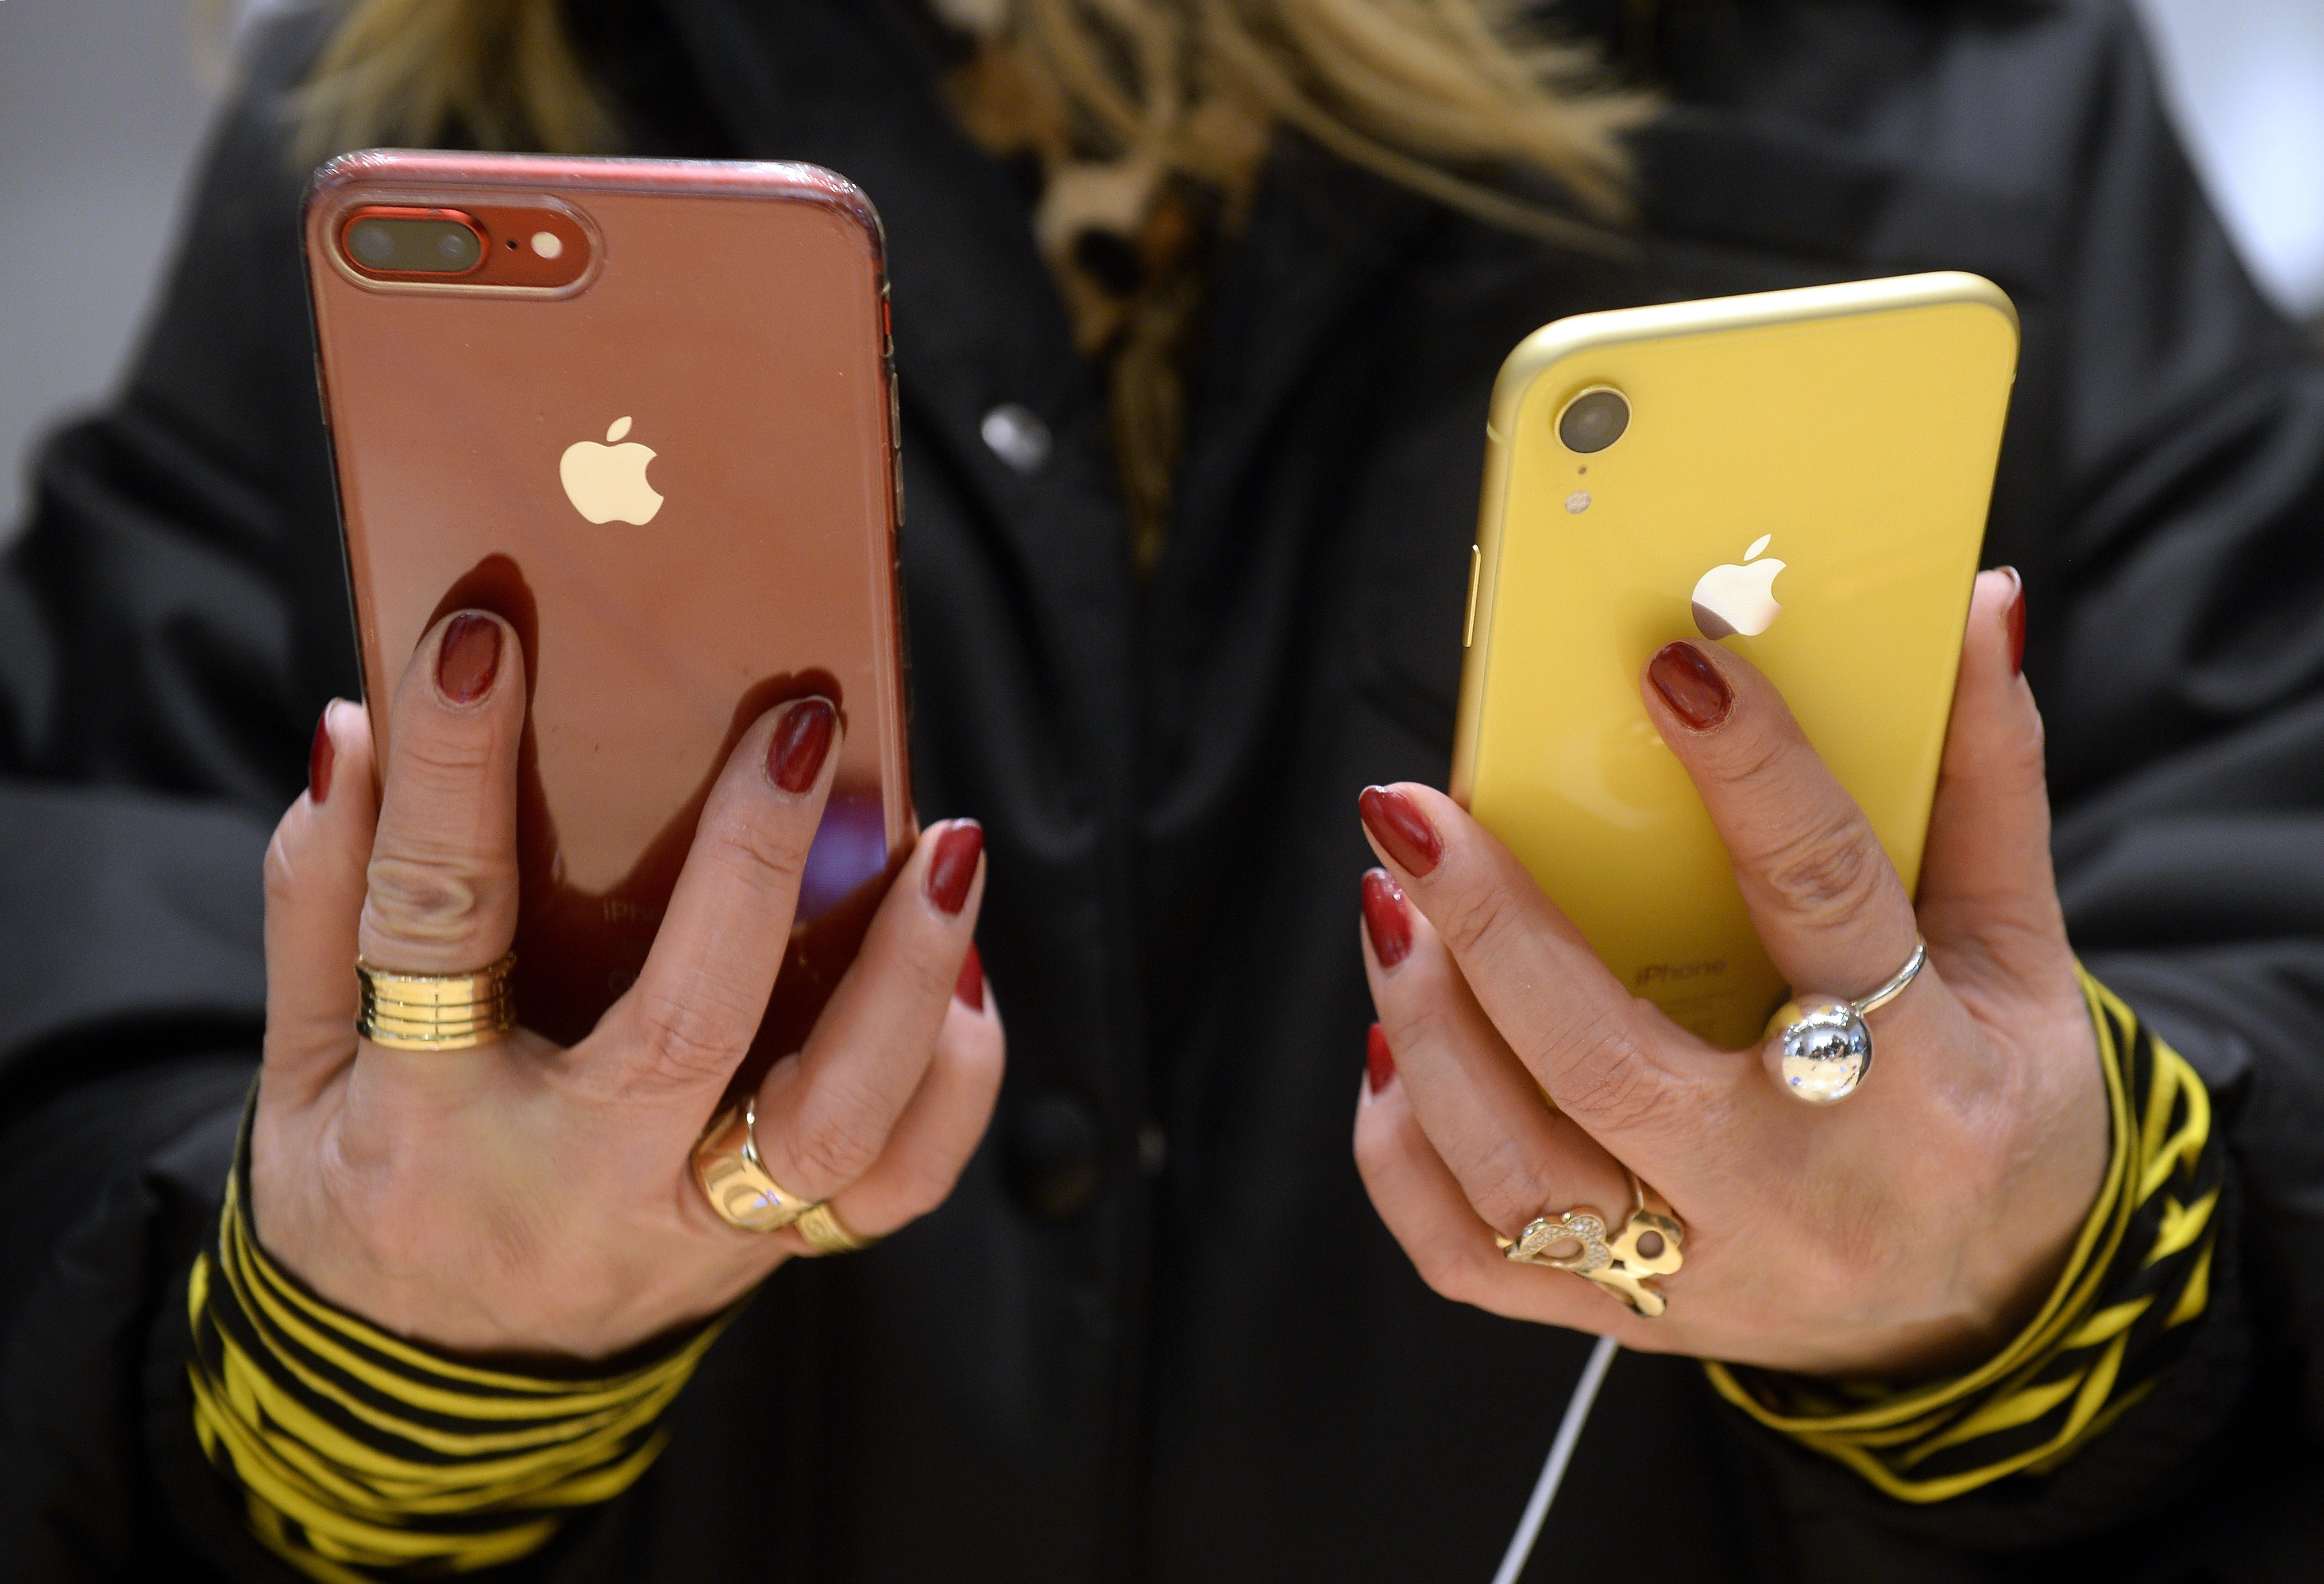 Apple has reportedly cut production orders in recent weeks for all three iPhone models launched in September.